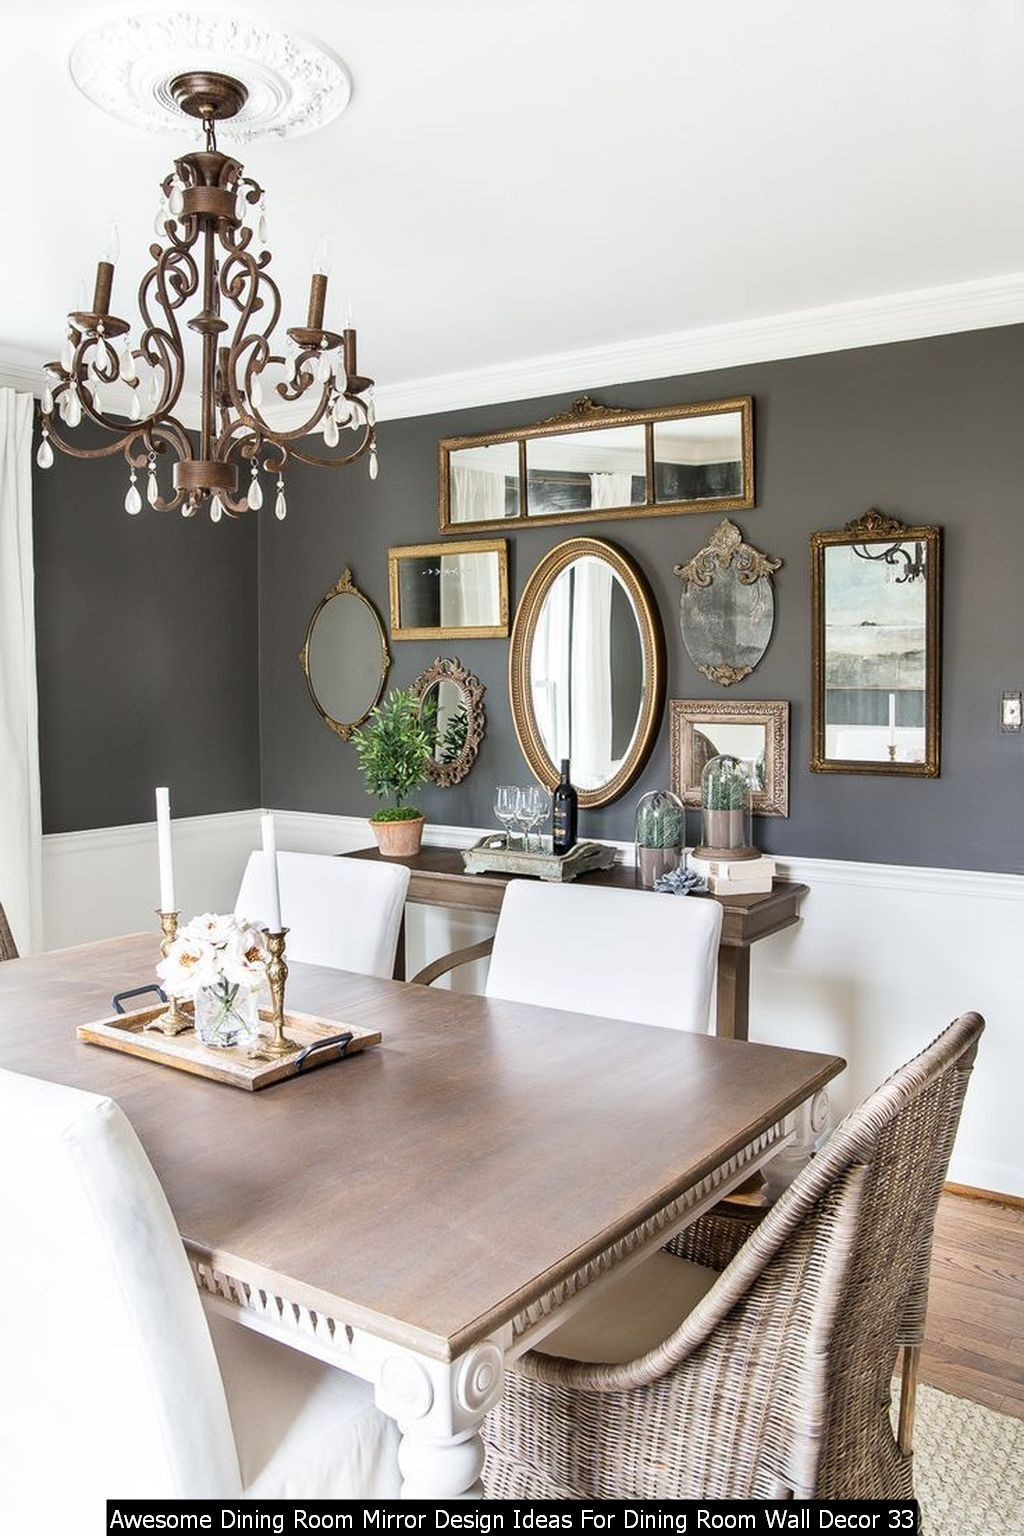 20 Awesome Dining Room Mirror Design Ideas For Dining Room Wall Decor Dining Room Mirror Wall Mirror Dining Room Trendy Dining Room